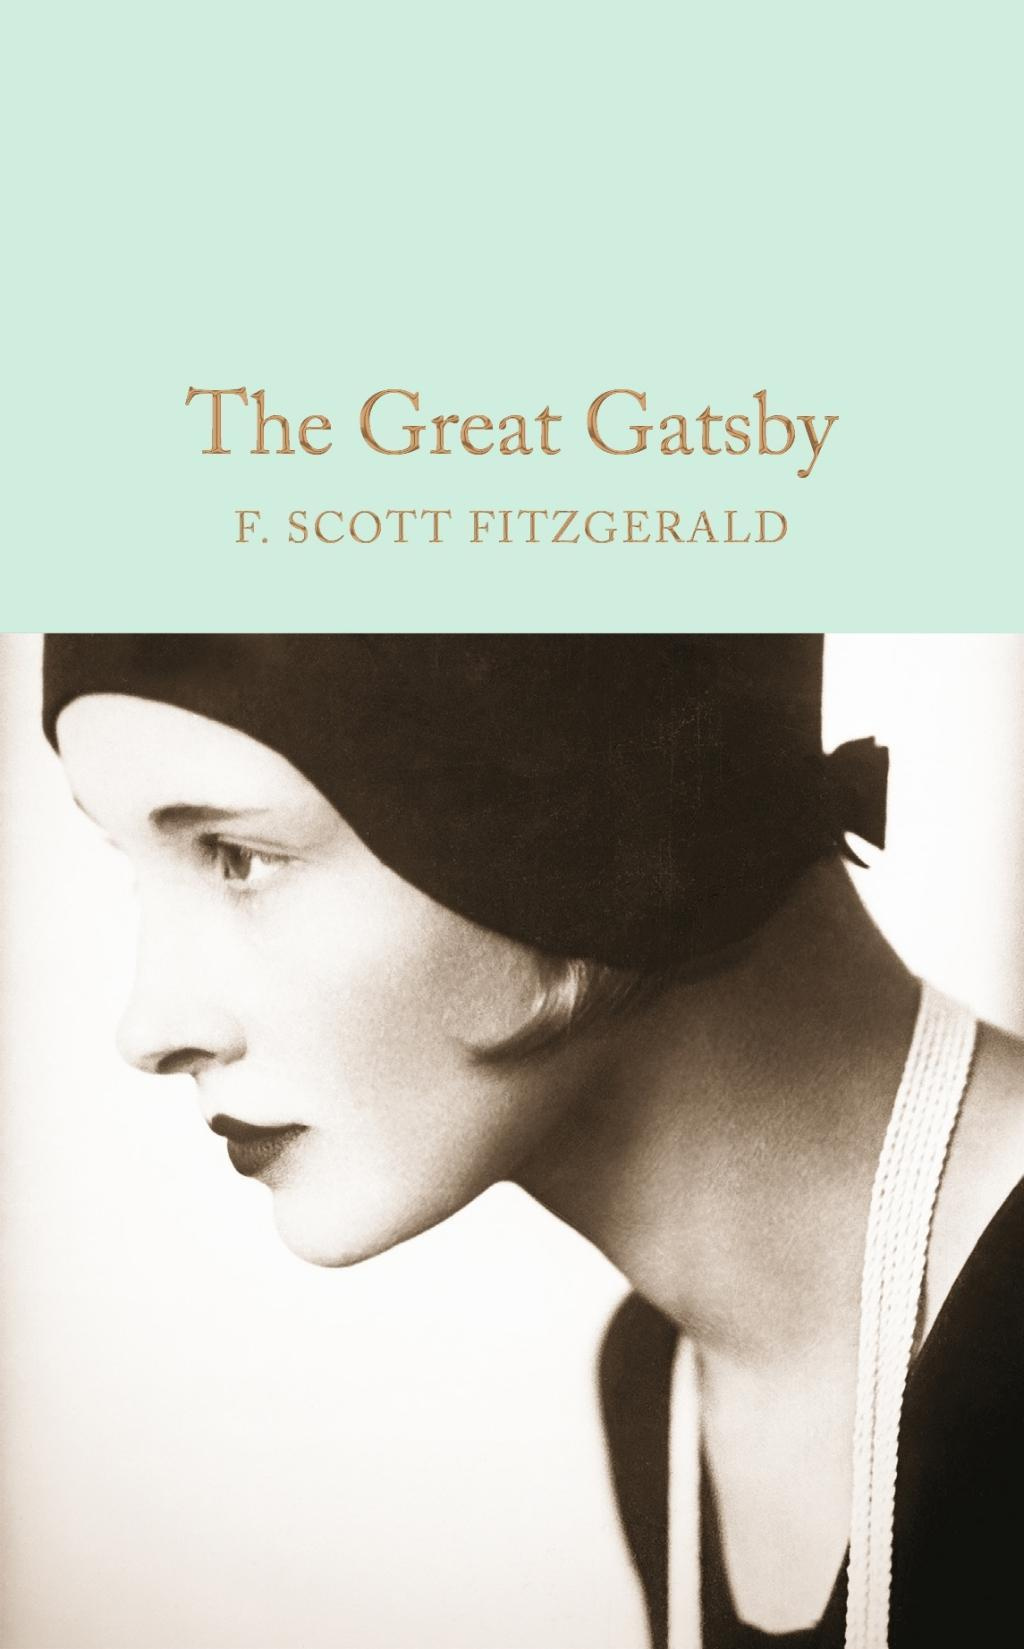 a character comparison in the great gatsby by fscott fitzgerald